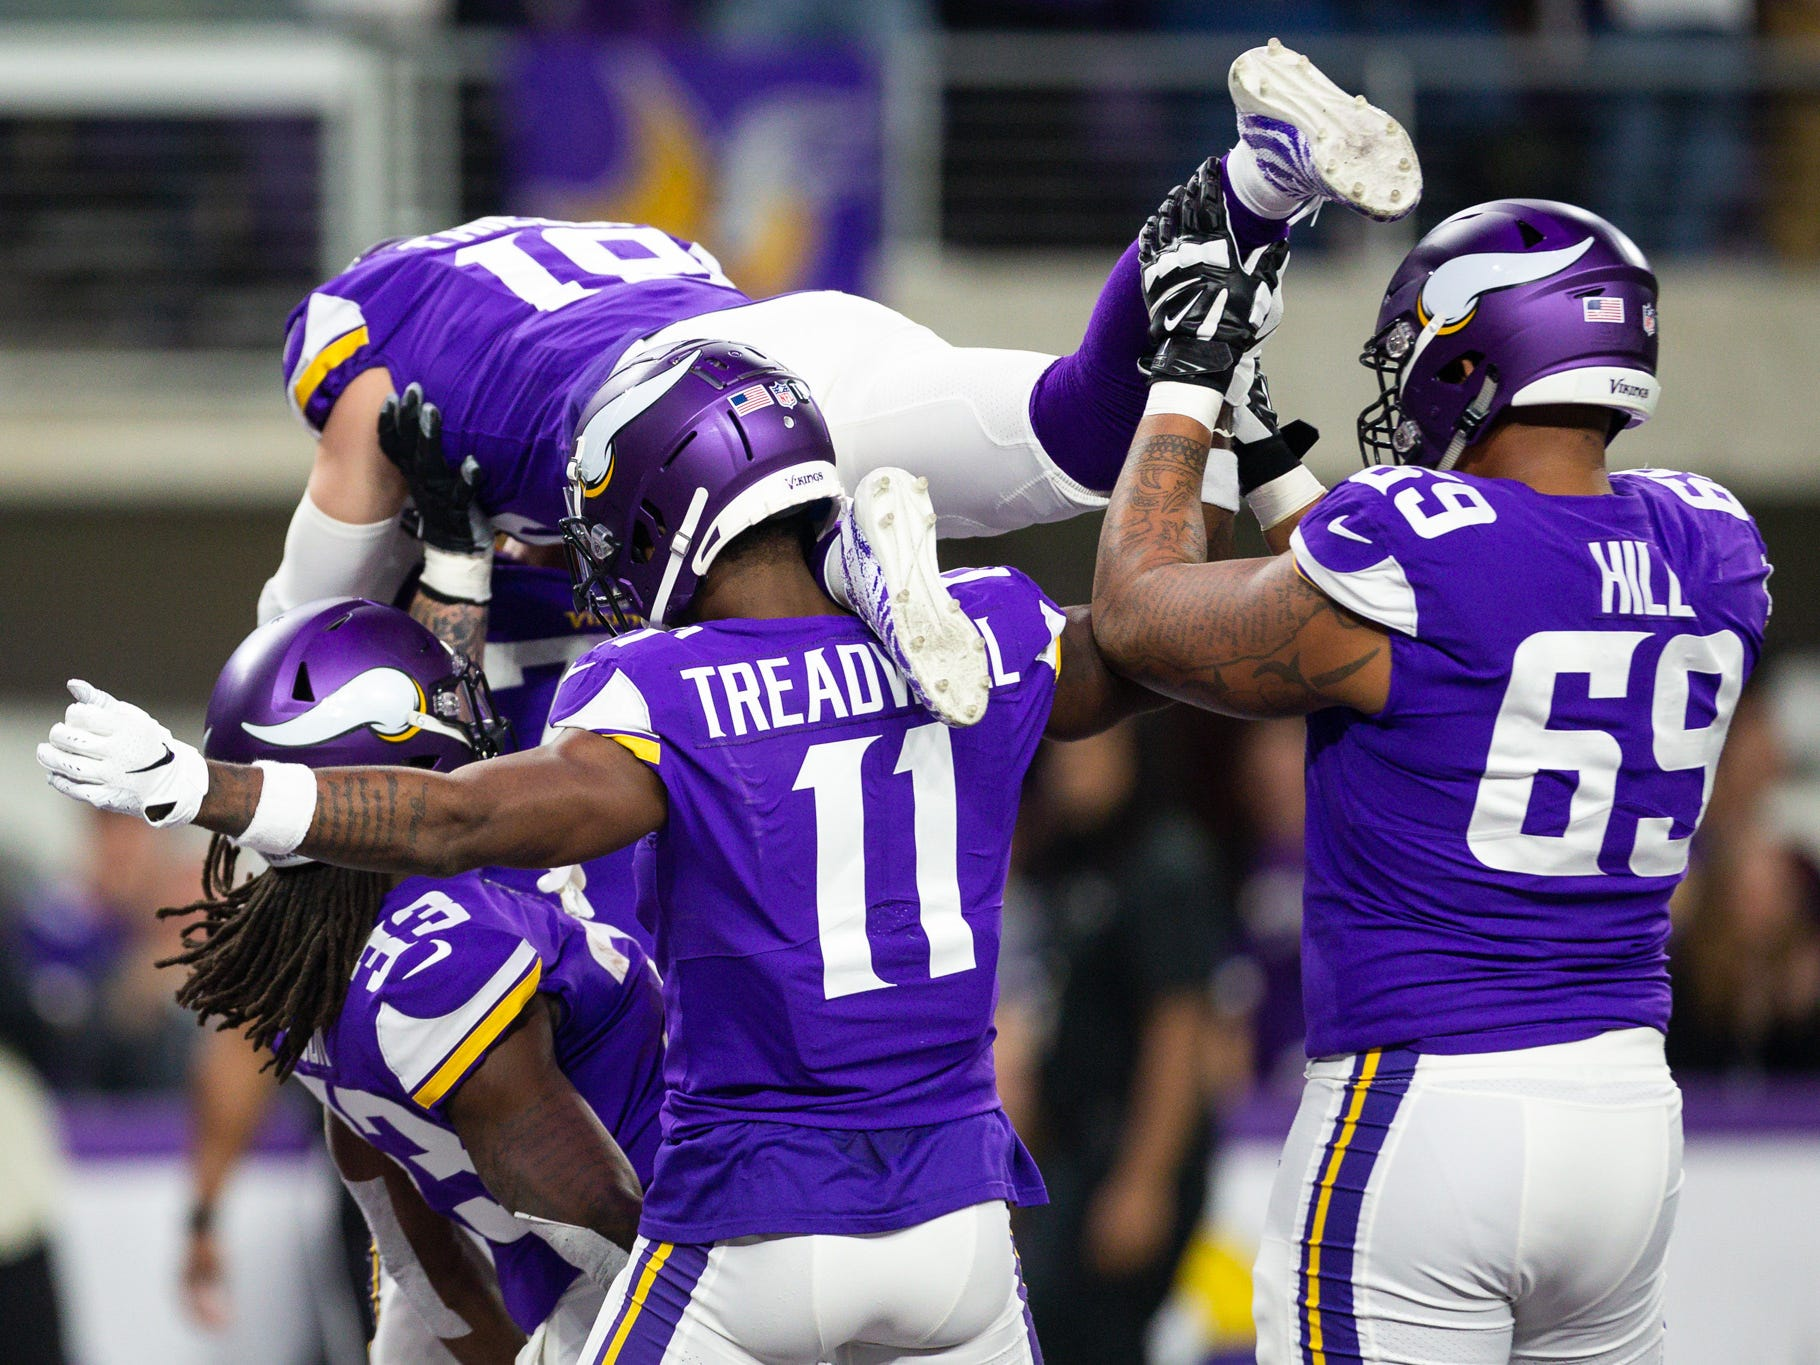 Minnesota Vikings running back Dalvin Cook (33) celebrates with teammates after scoring a touchdown during the second quarter against the Green Bay Packers at U.S. Bank Stadium.